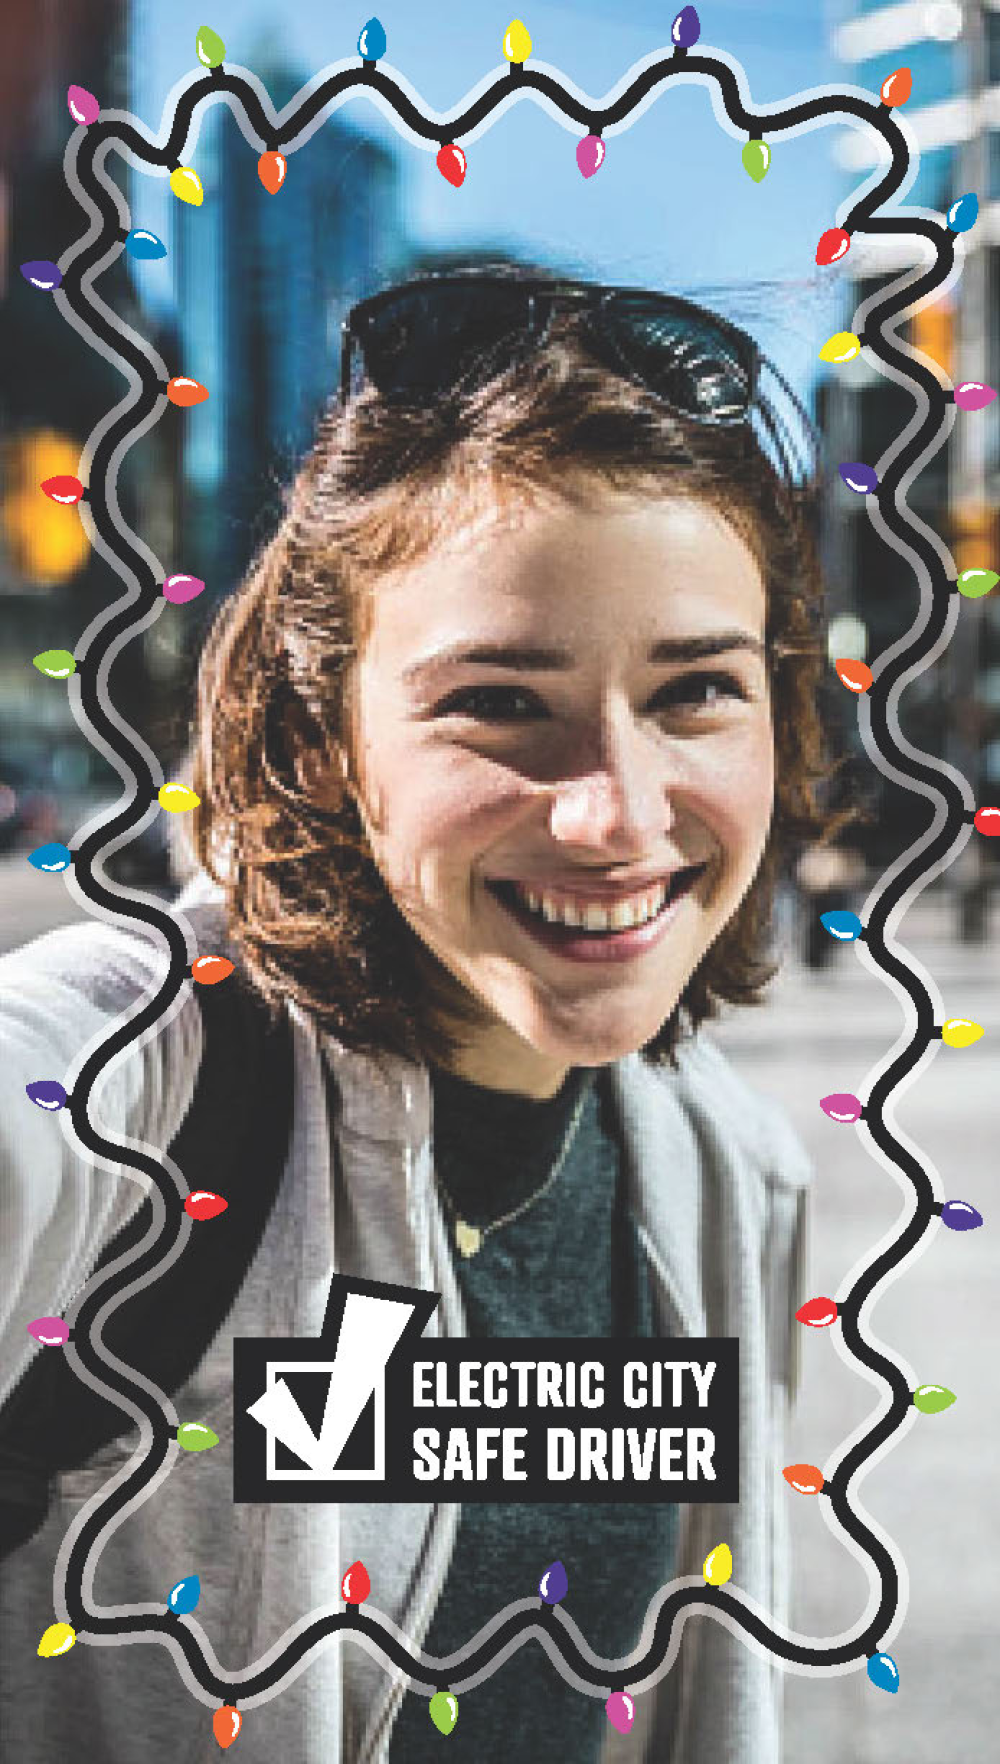 electric city safe driver snapchat filter